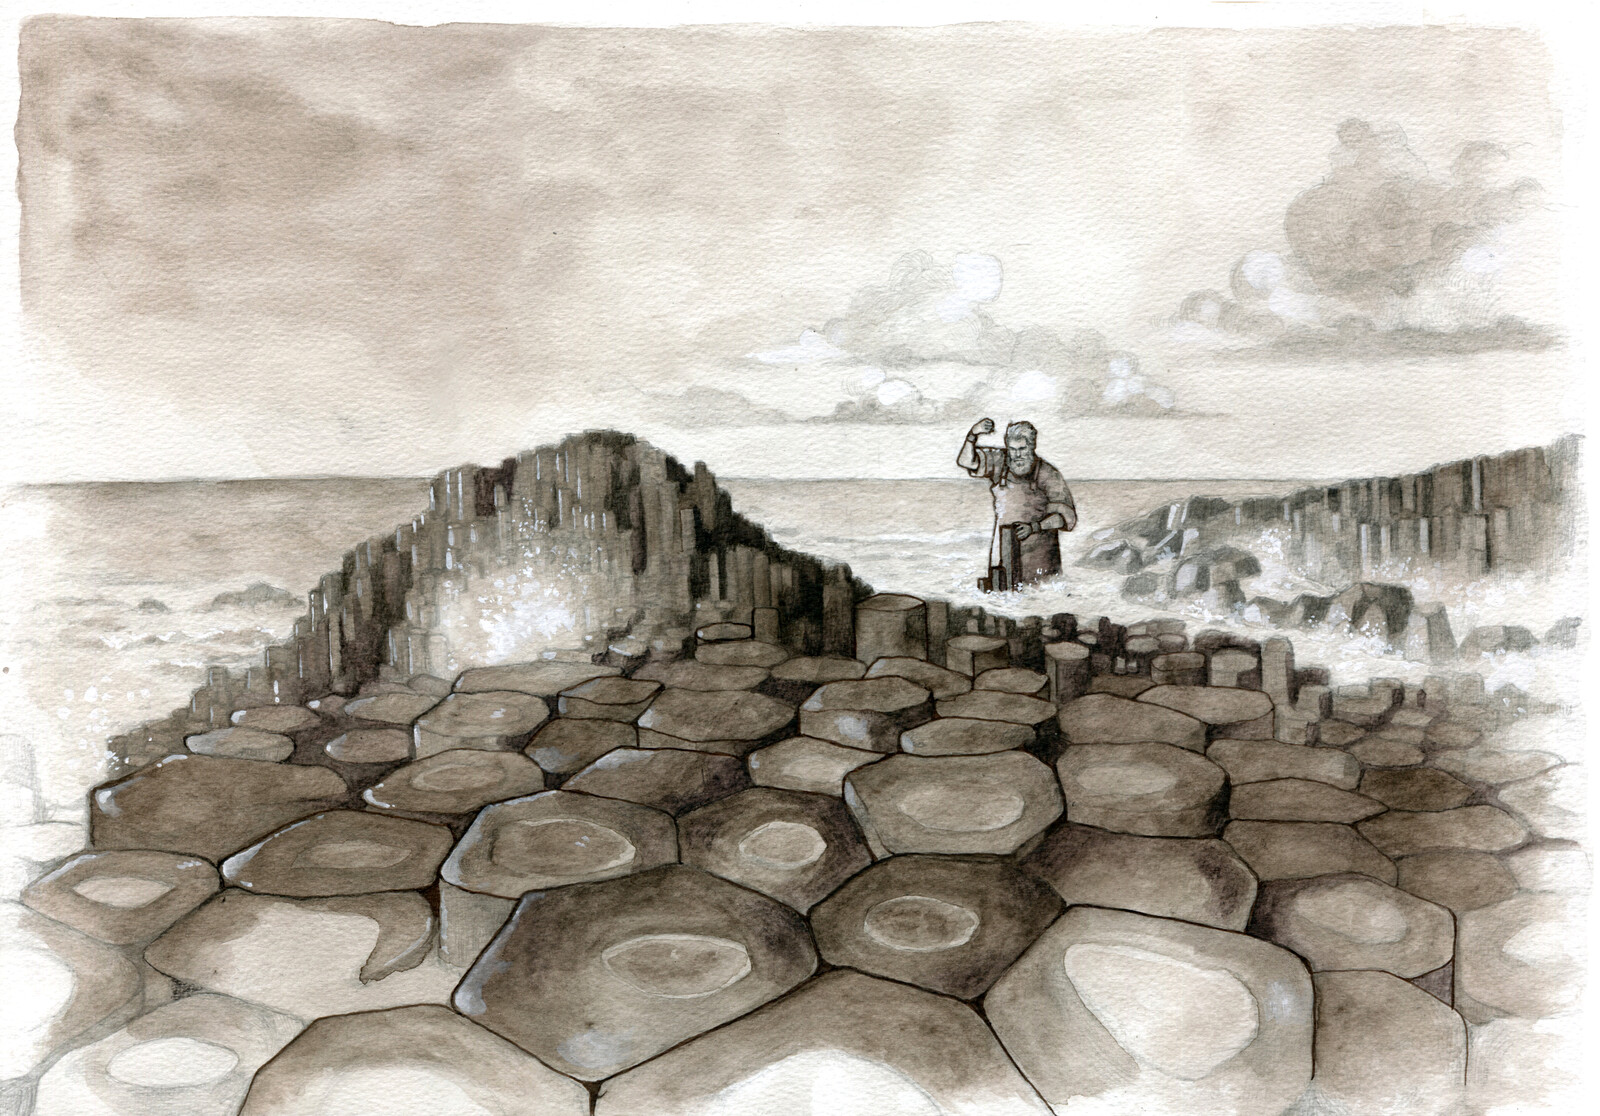 First scene: Fionn is building the causeway to get to Benanndonner.